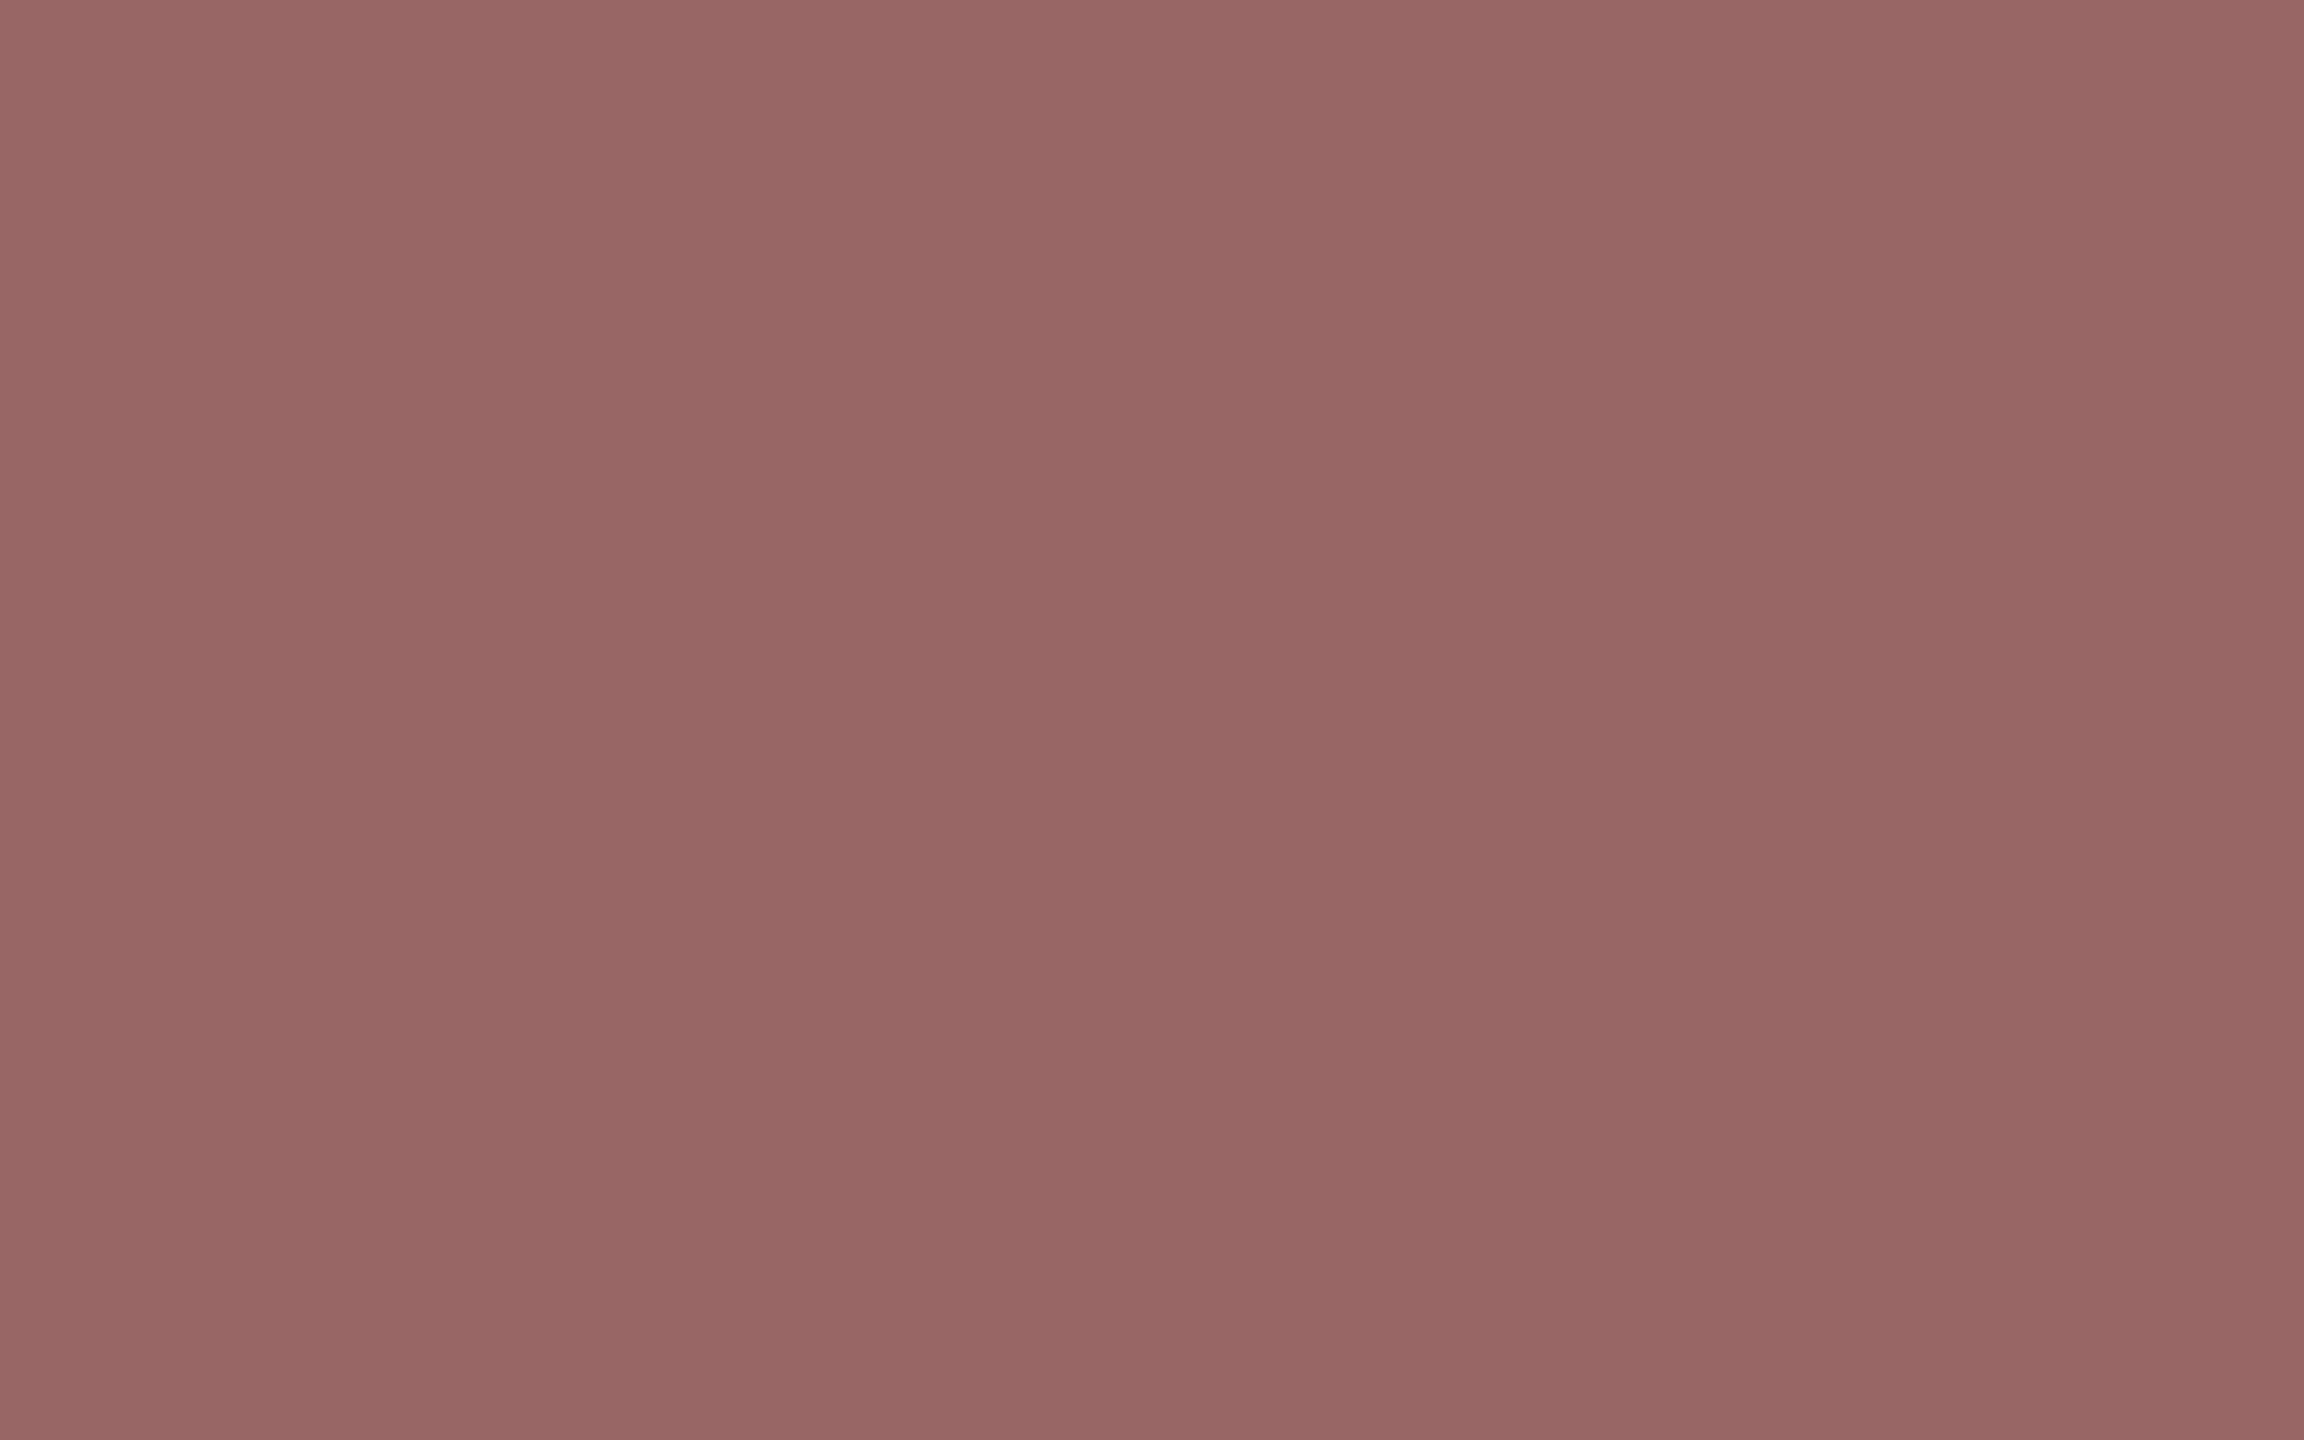 2304x1440 Copper Rose Solid Color Background